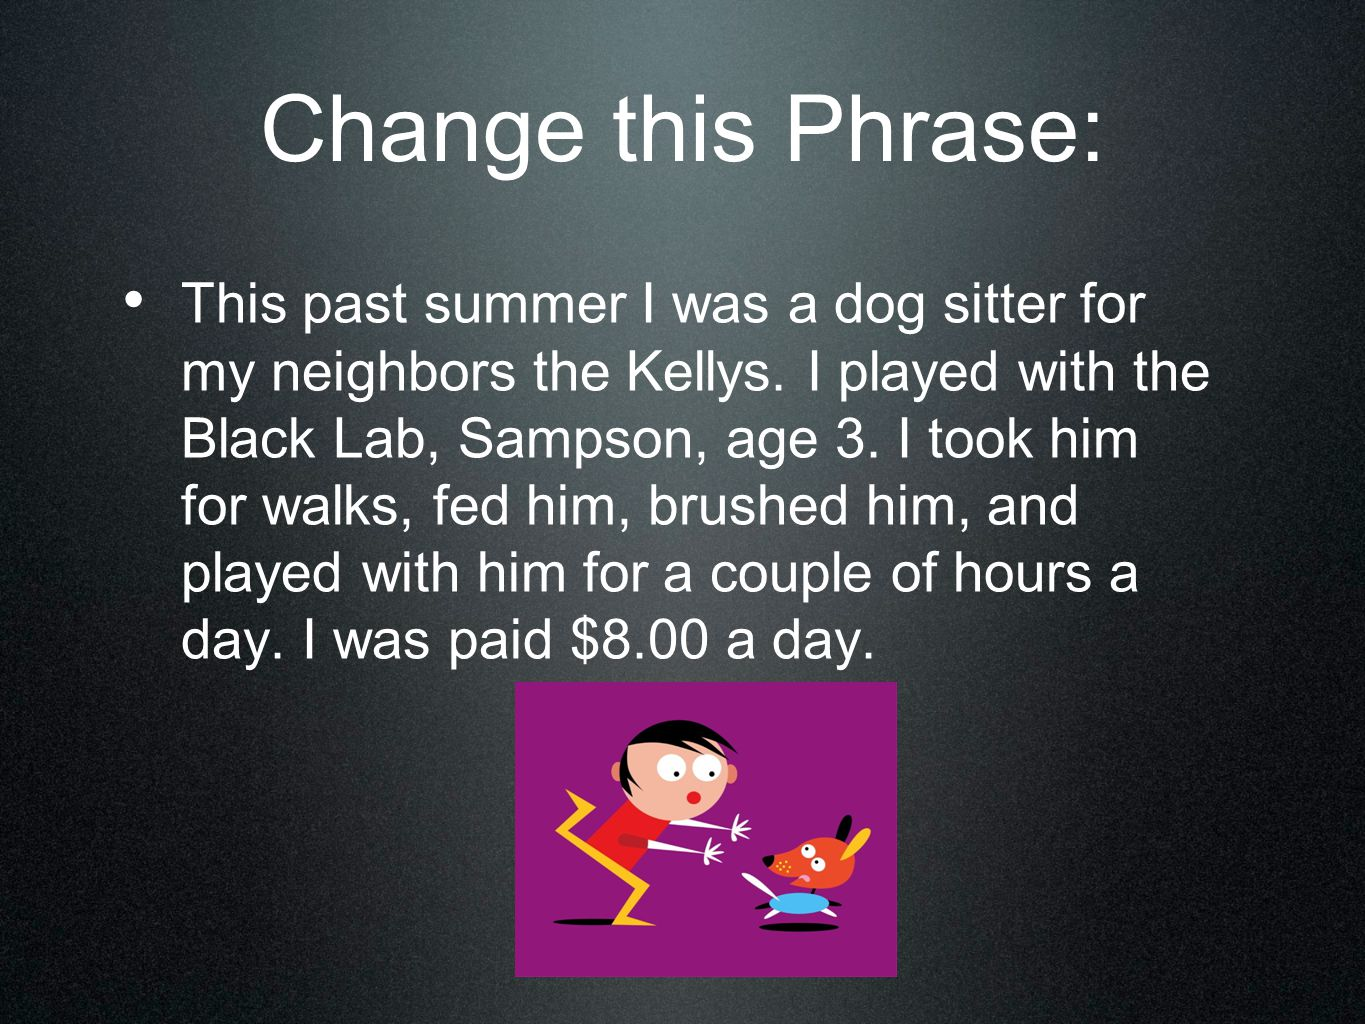 Change this Phrase: This past summer I was a dog sitter for my neighbors the Kellys. I played with the Black Lab, Sampson, age 3. I took him for walks